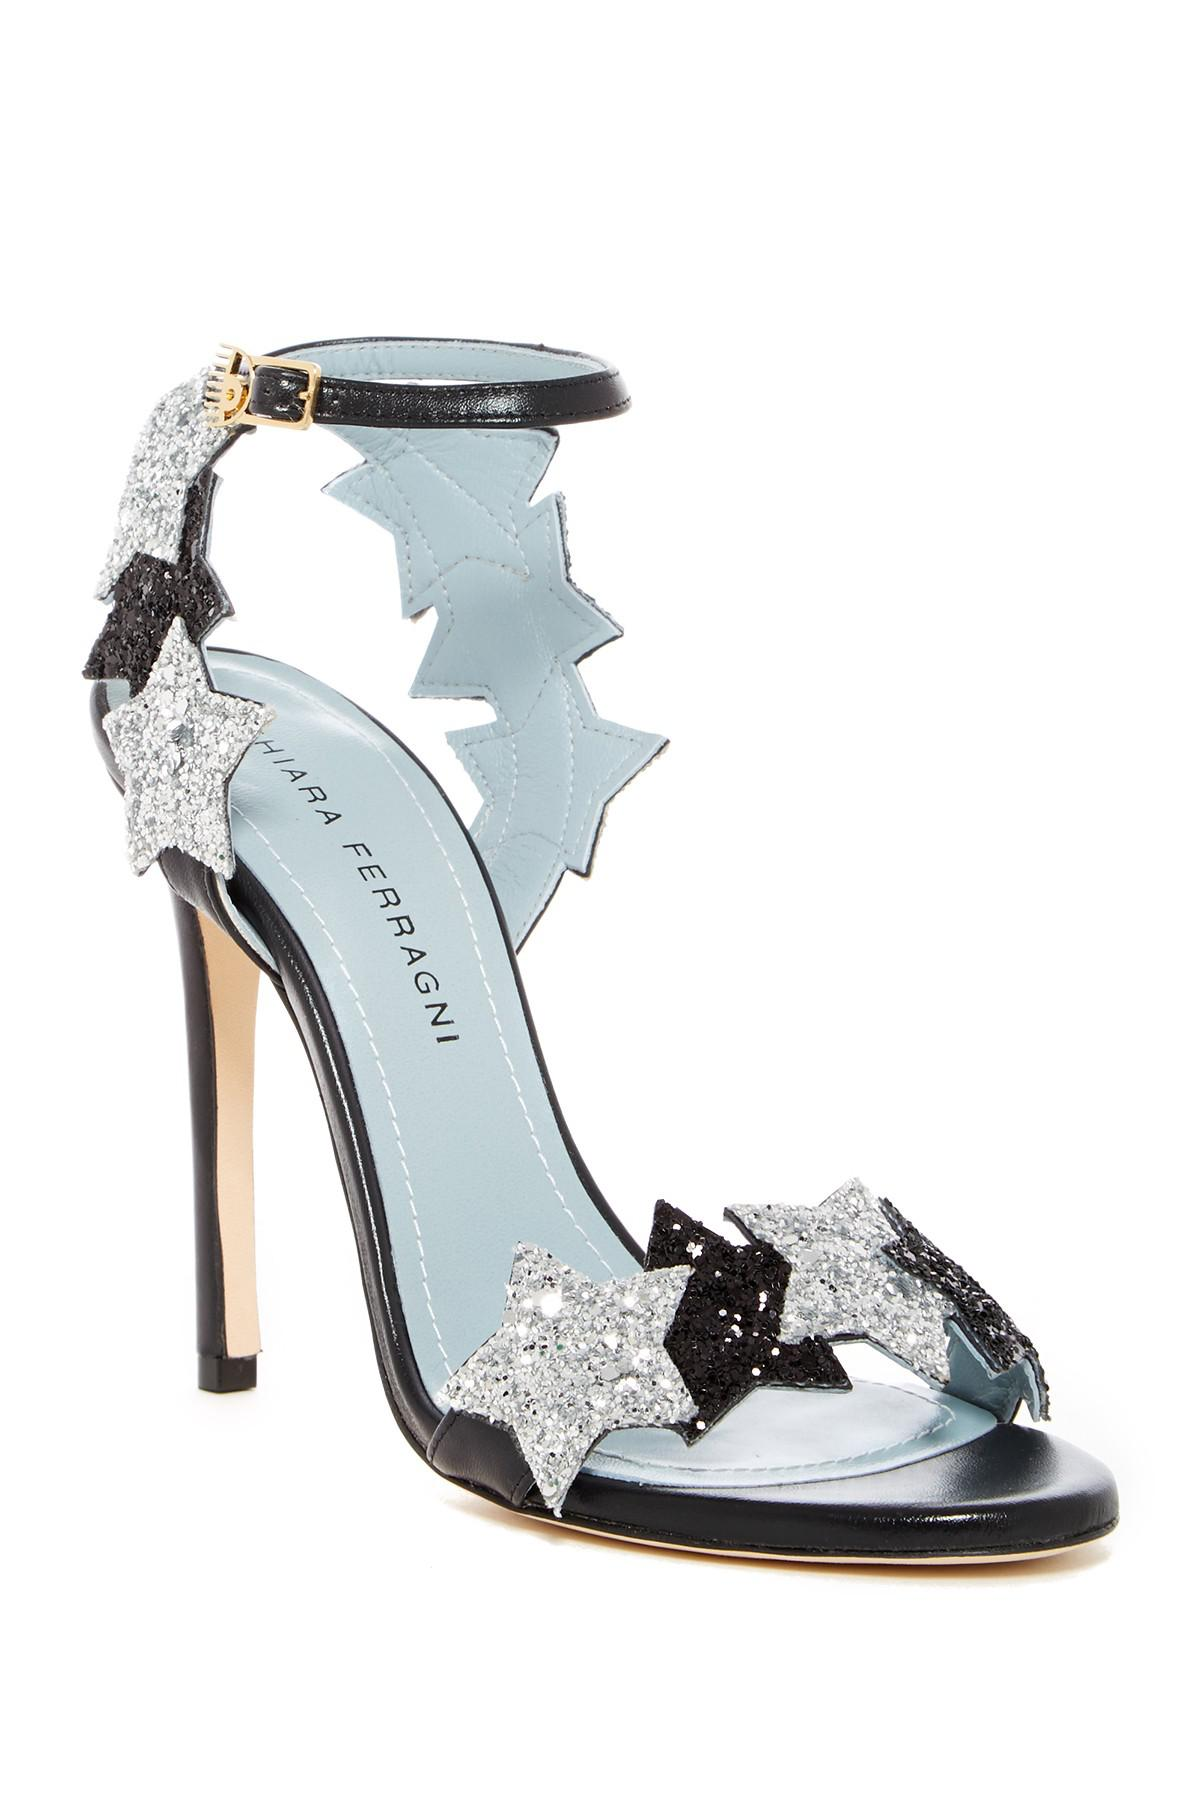 Chiara Ferragni Star Applique Stappy Stiletto Heel GFag12YO2k